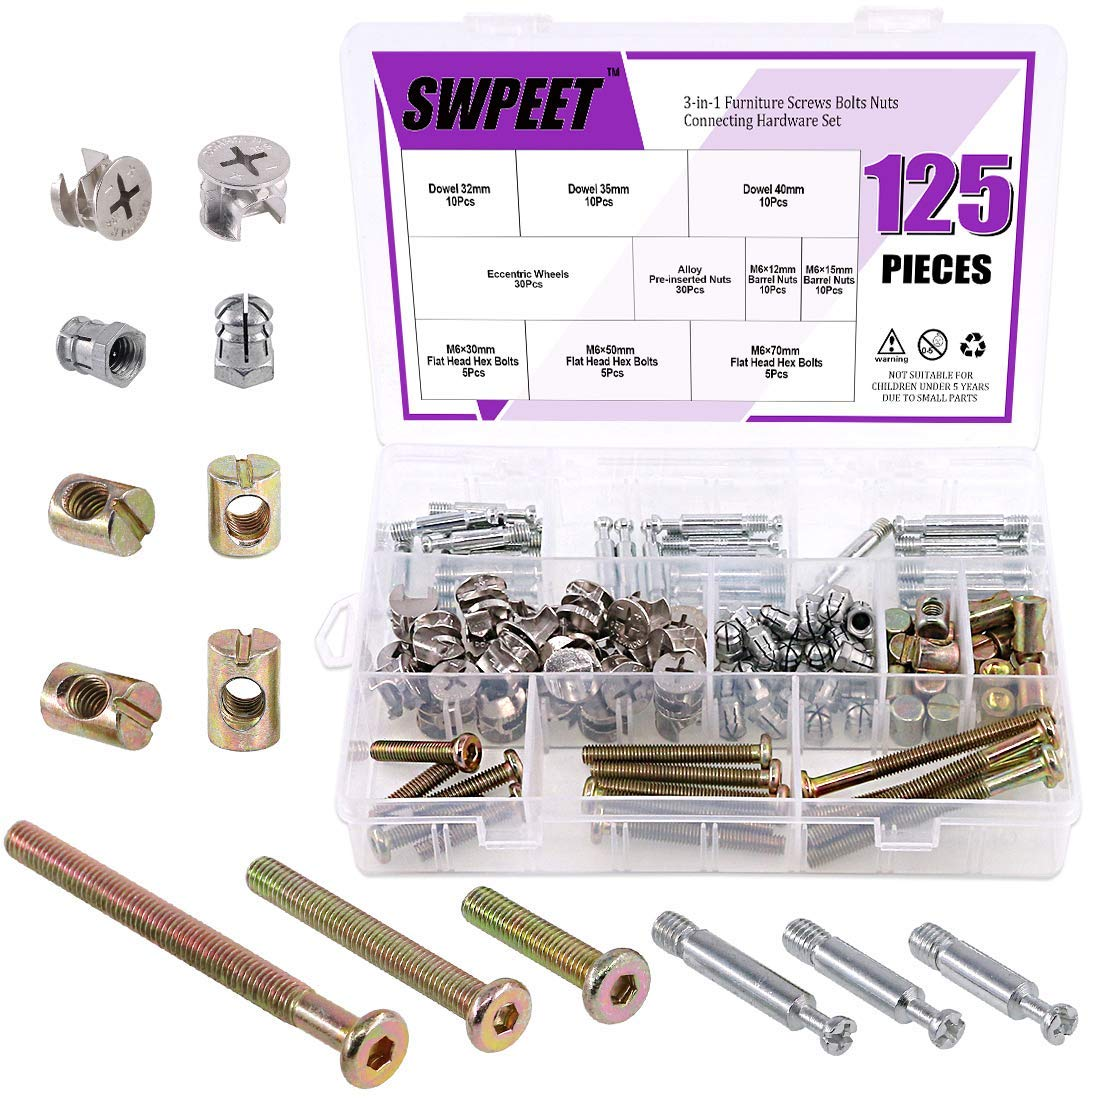 125Pcs 3 in 1 Furniture Cabinet Fixing Screw Locking Cam Bolt Nut Fitting Kit, Cam Fitting with Furniture Eccentric Fitting Furniture Side Connecting Pre-Inserted Nut Screw Eccentric Wheel